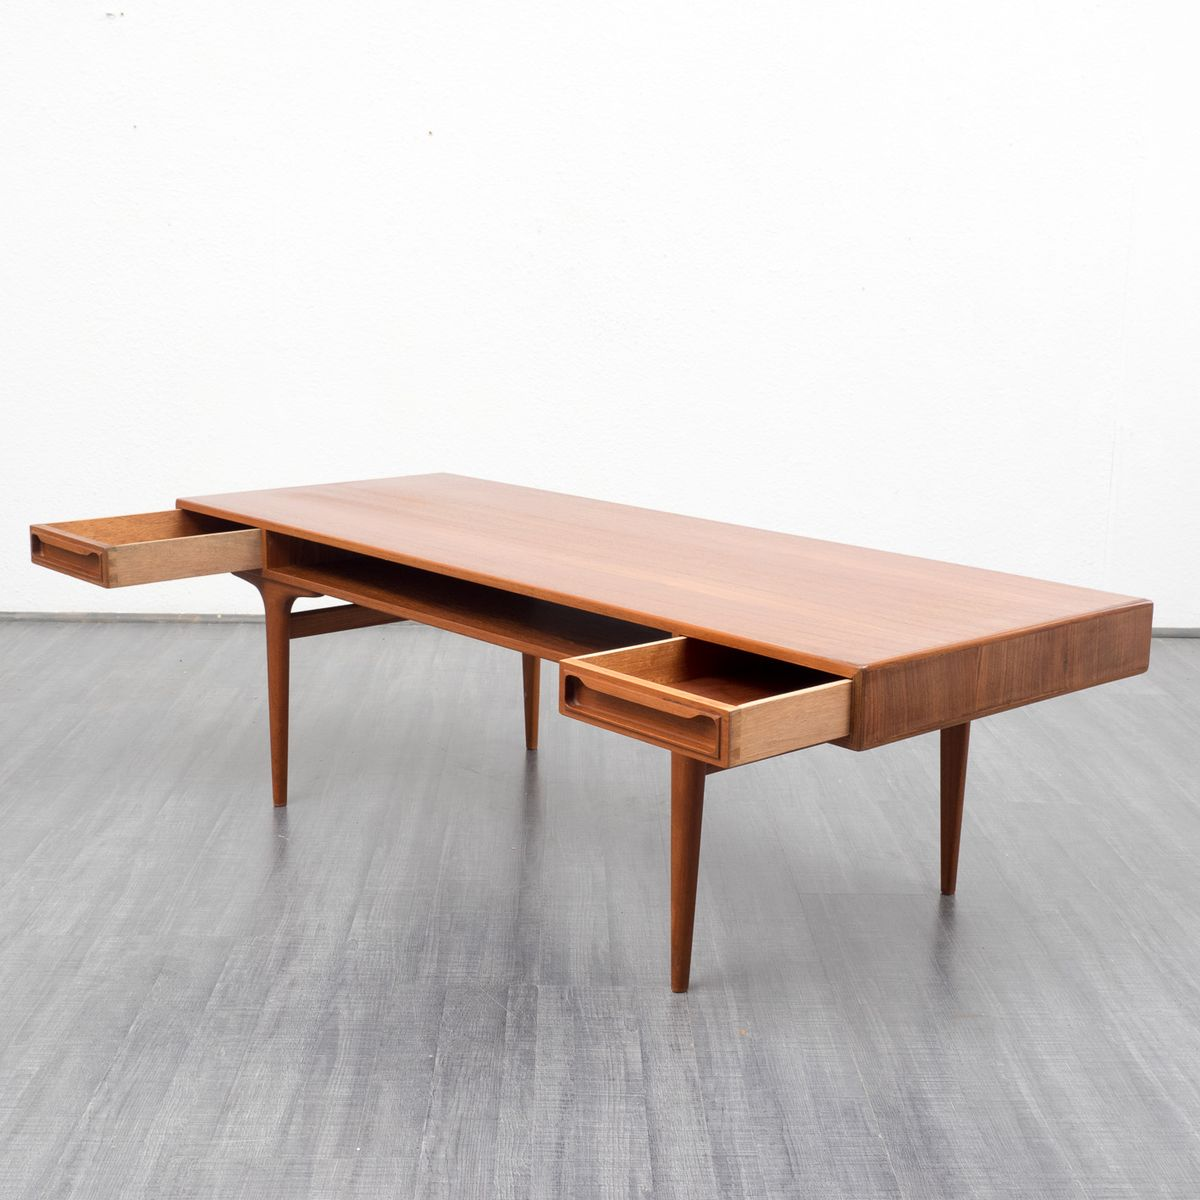 Vintage Teak Coffee Table with Two Drawers for sale at Pamono